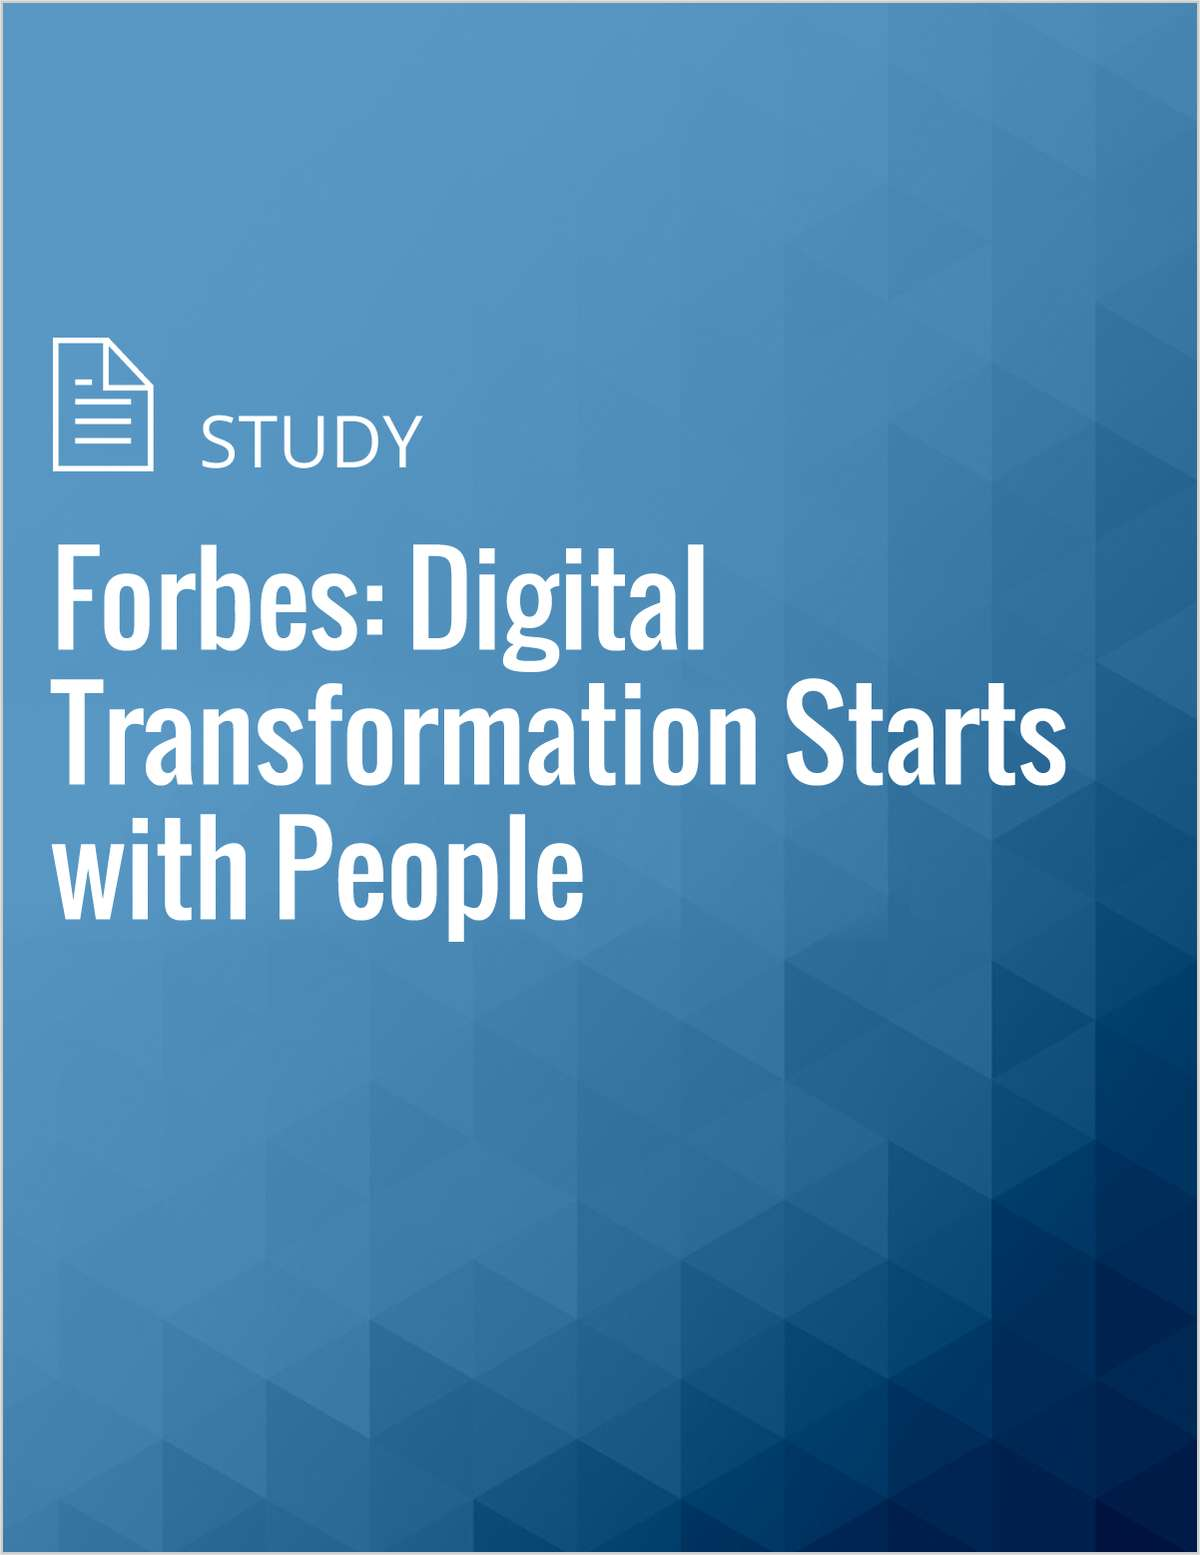 Forbes: Digital Transformation Starts with People